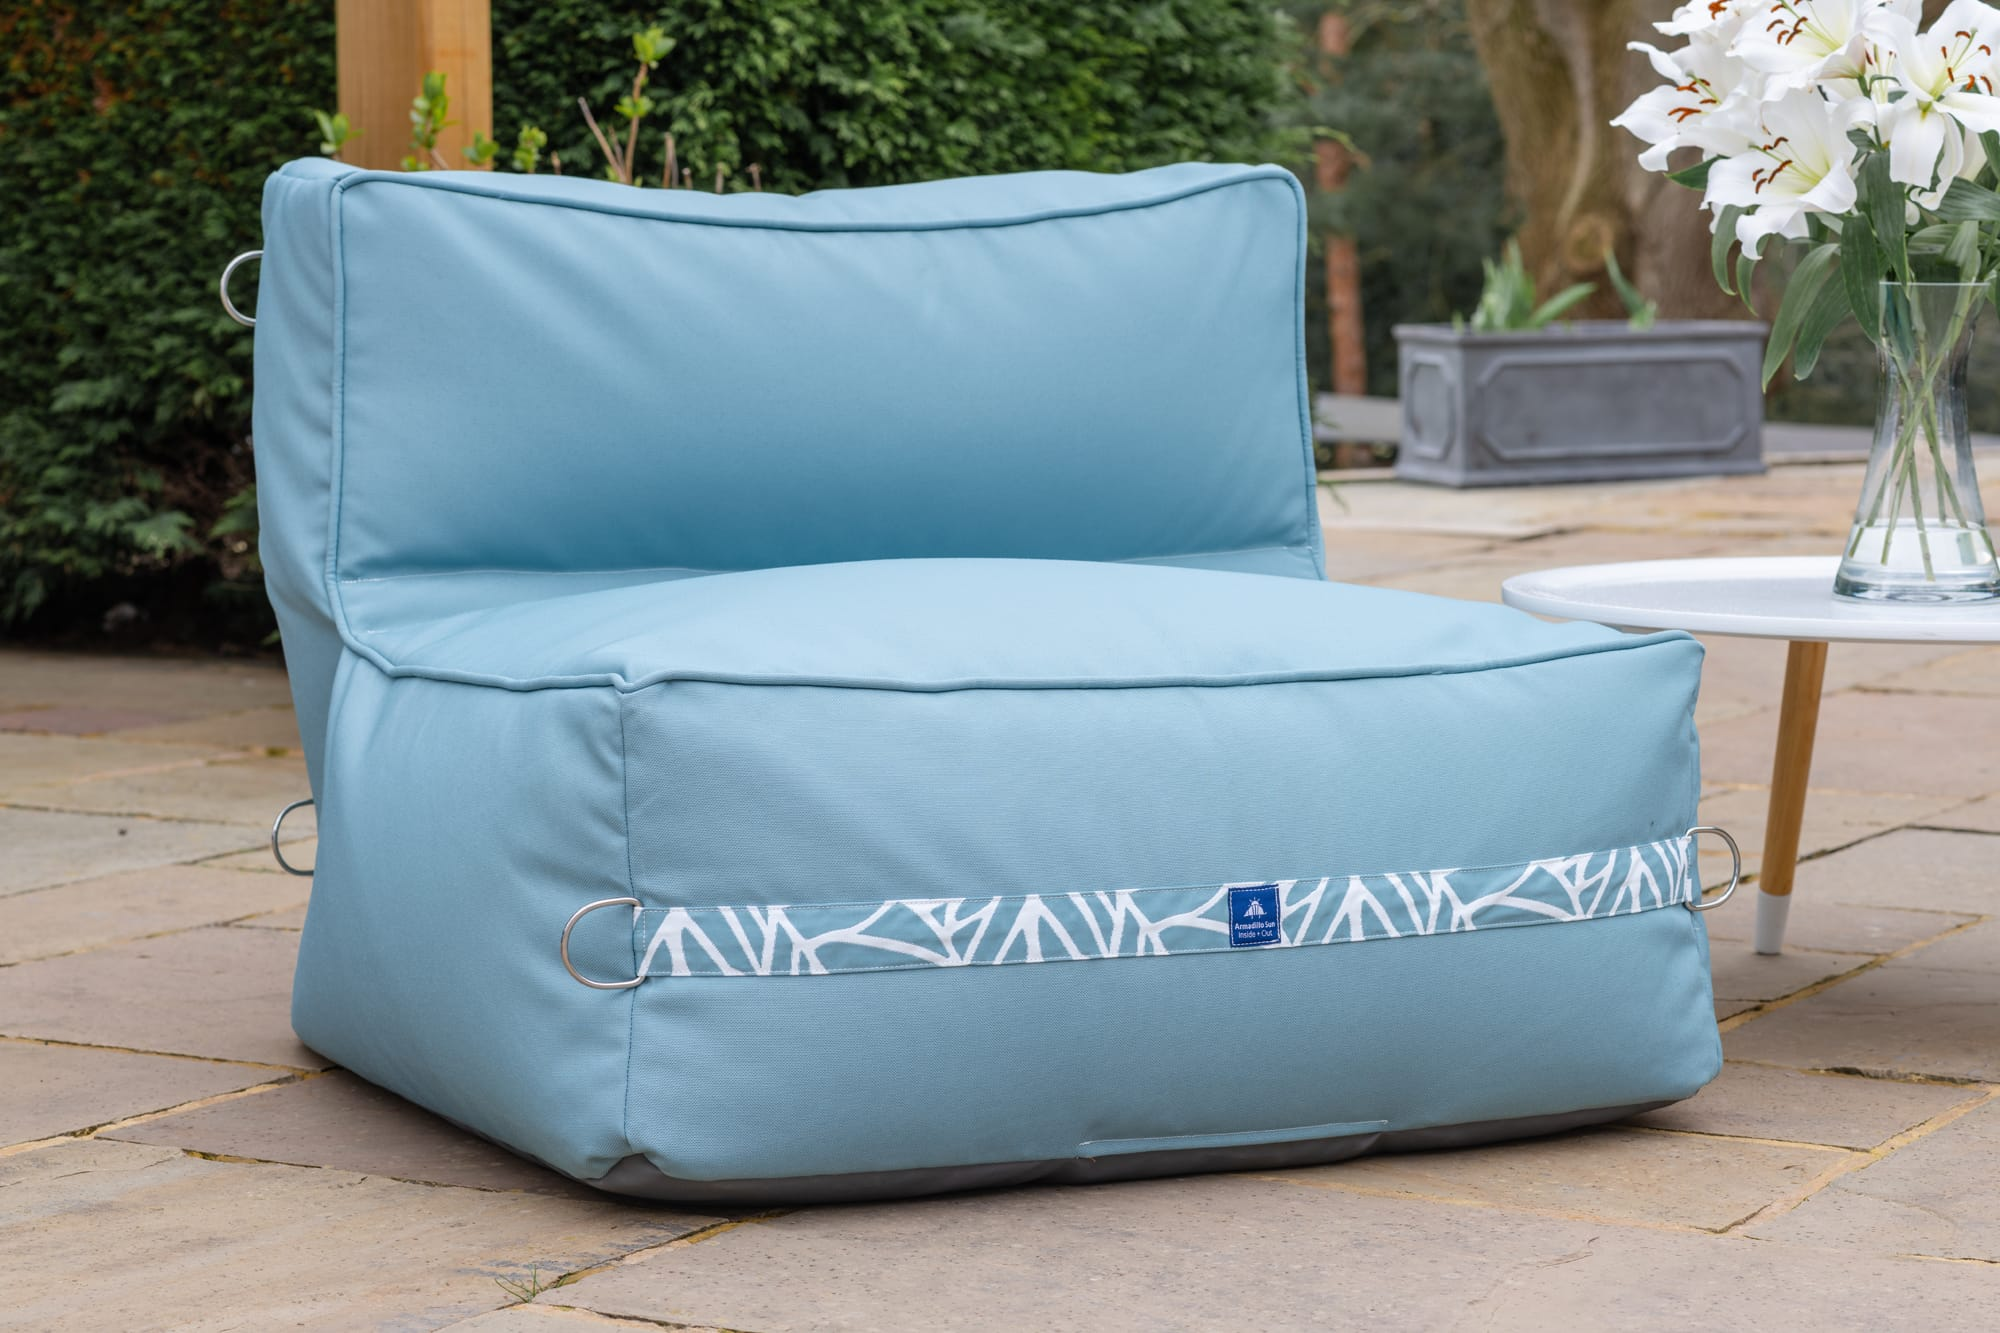 Adult Monaco Modular Bean Bag Chair in Ocean with Palm Patterned Straps